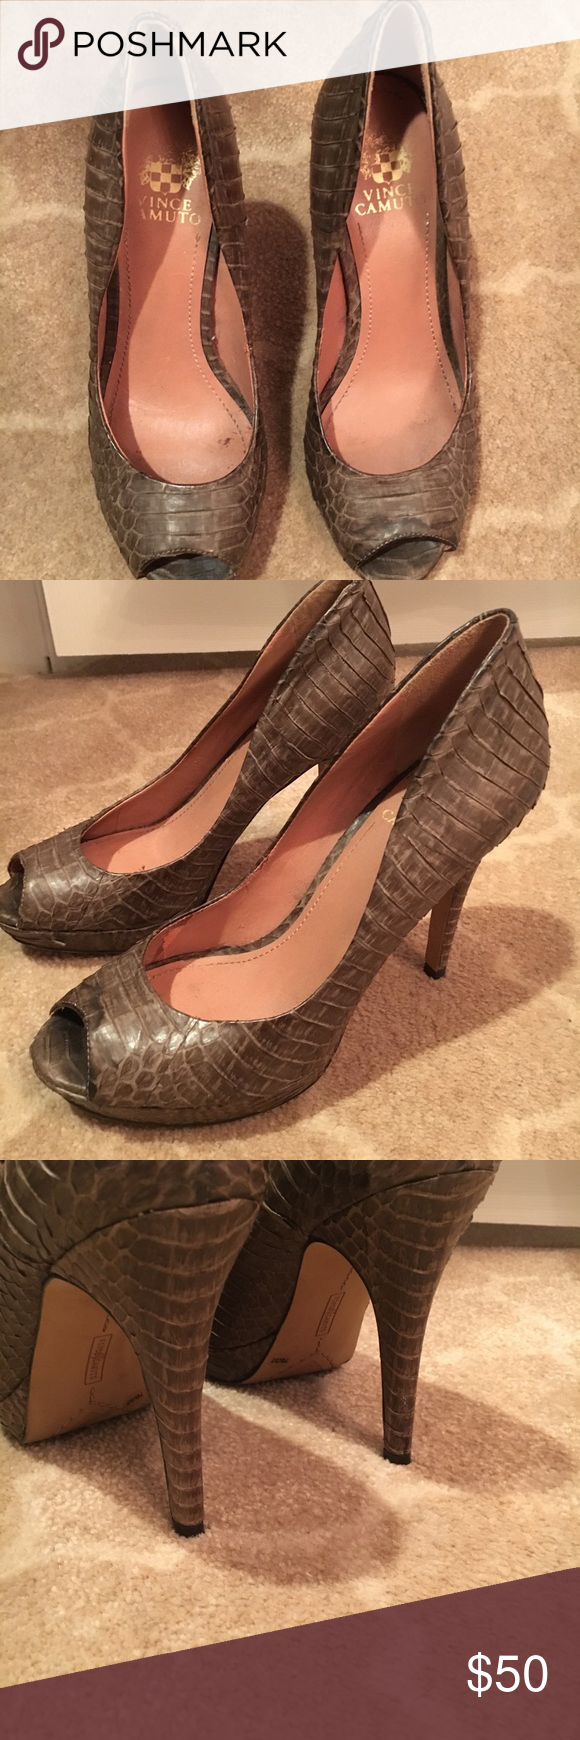 Vince Camuto heels Worn a few times but in good shape